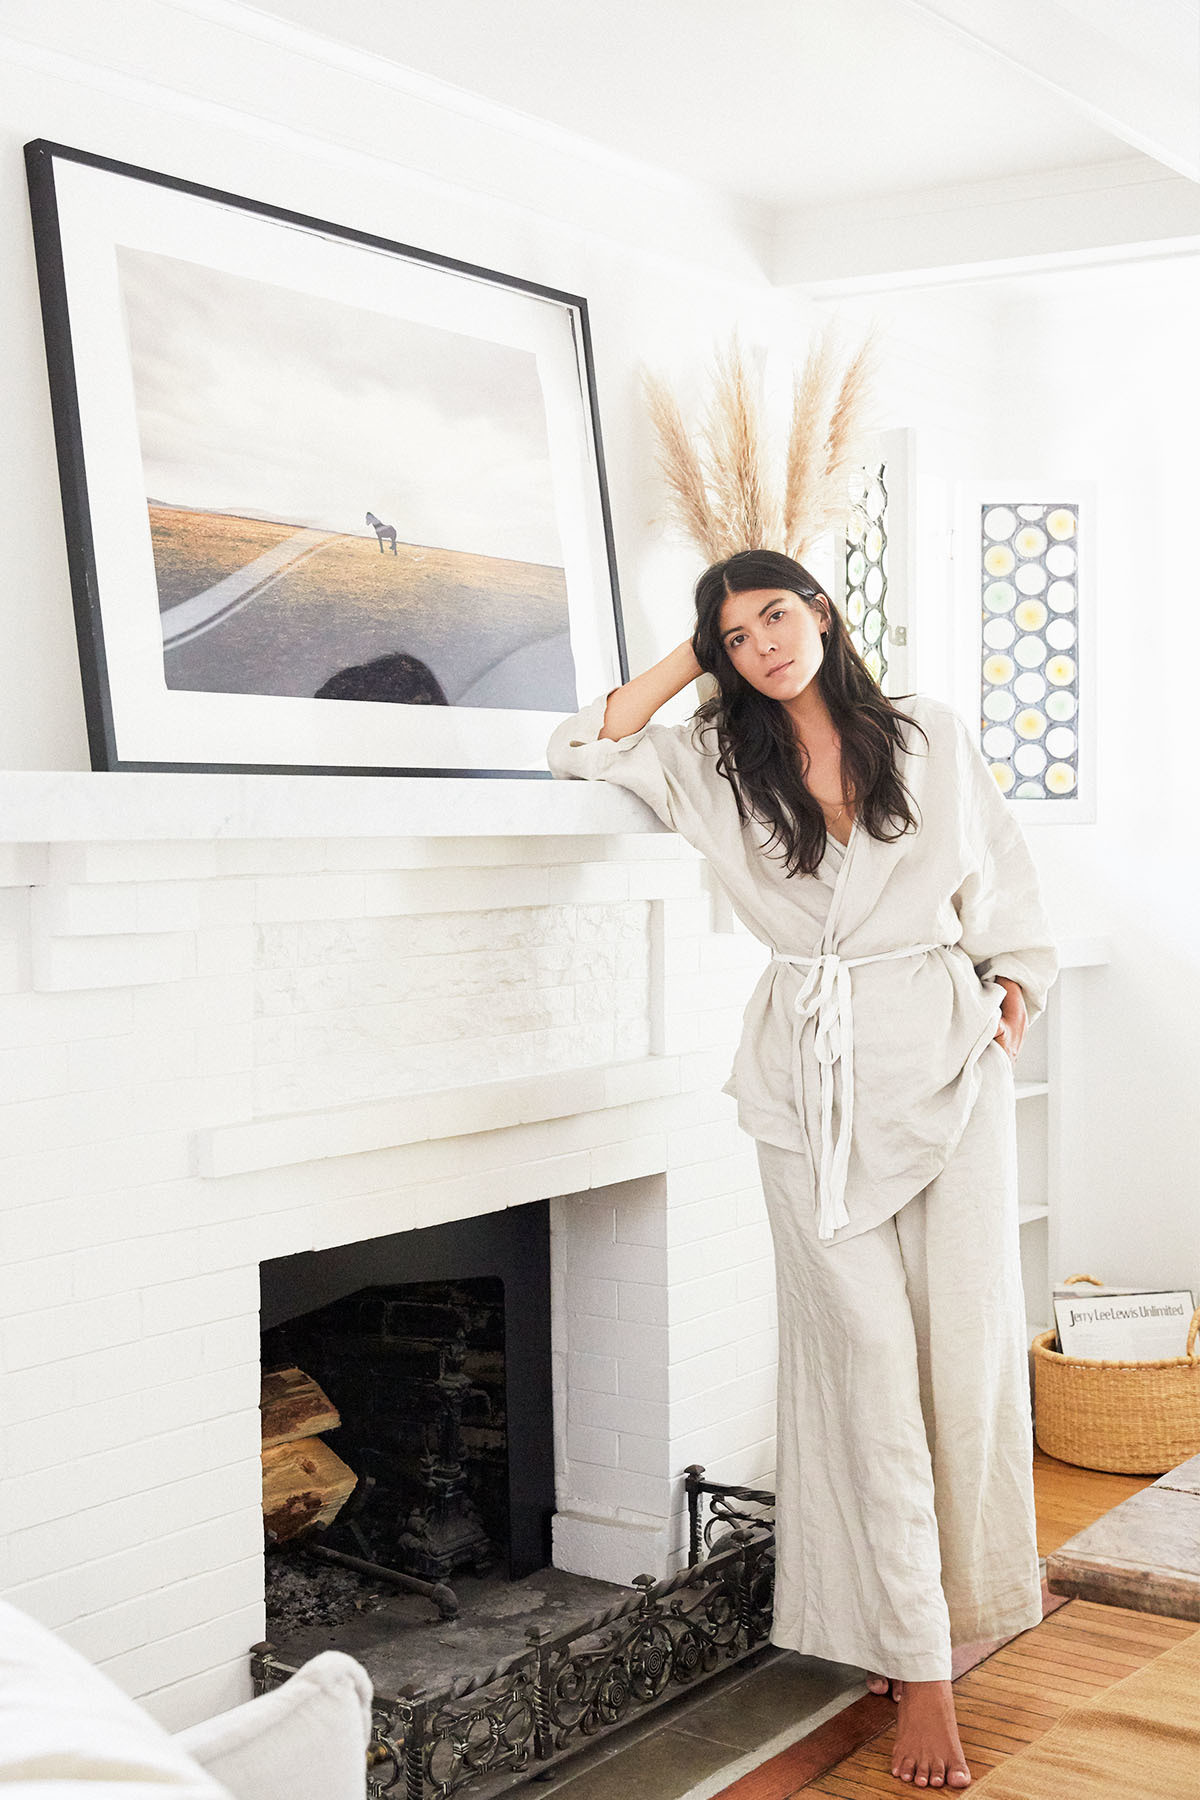 Beauty entrepreneur Neada Deters adheres to a textured, beach-inspired style code.